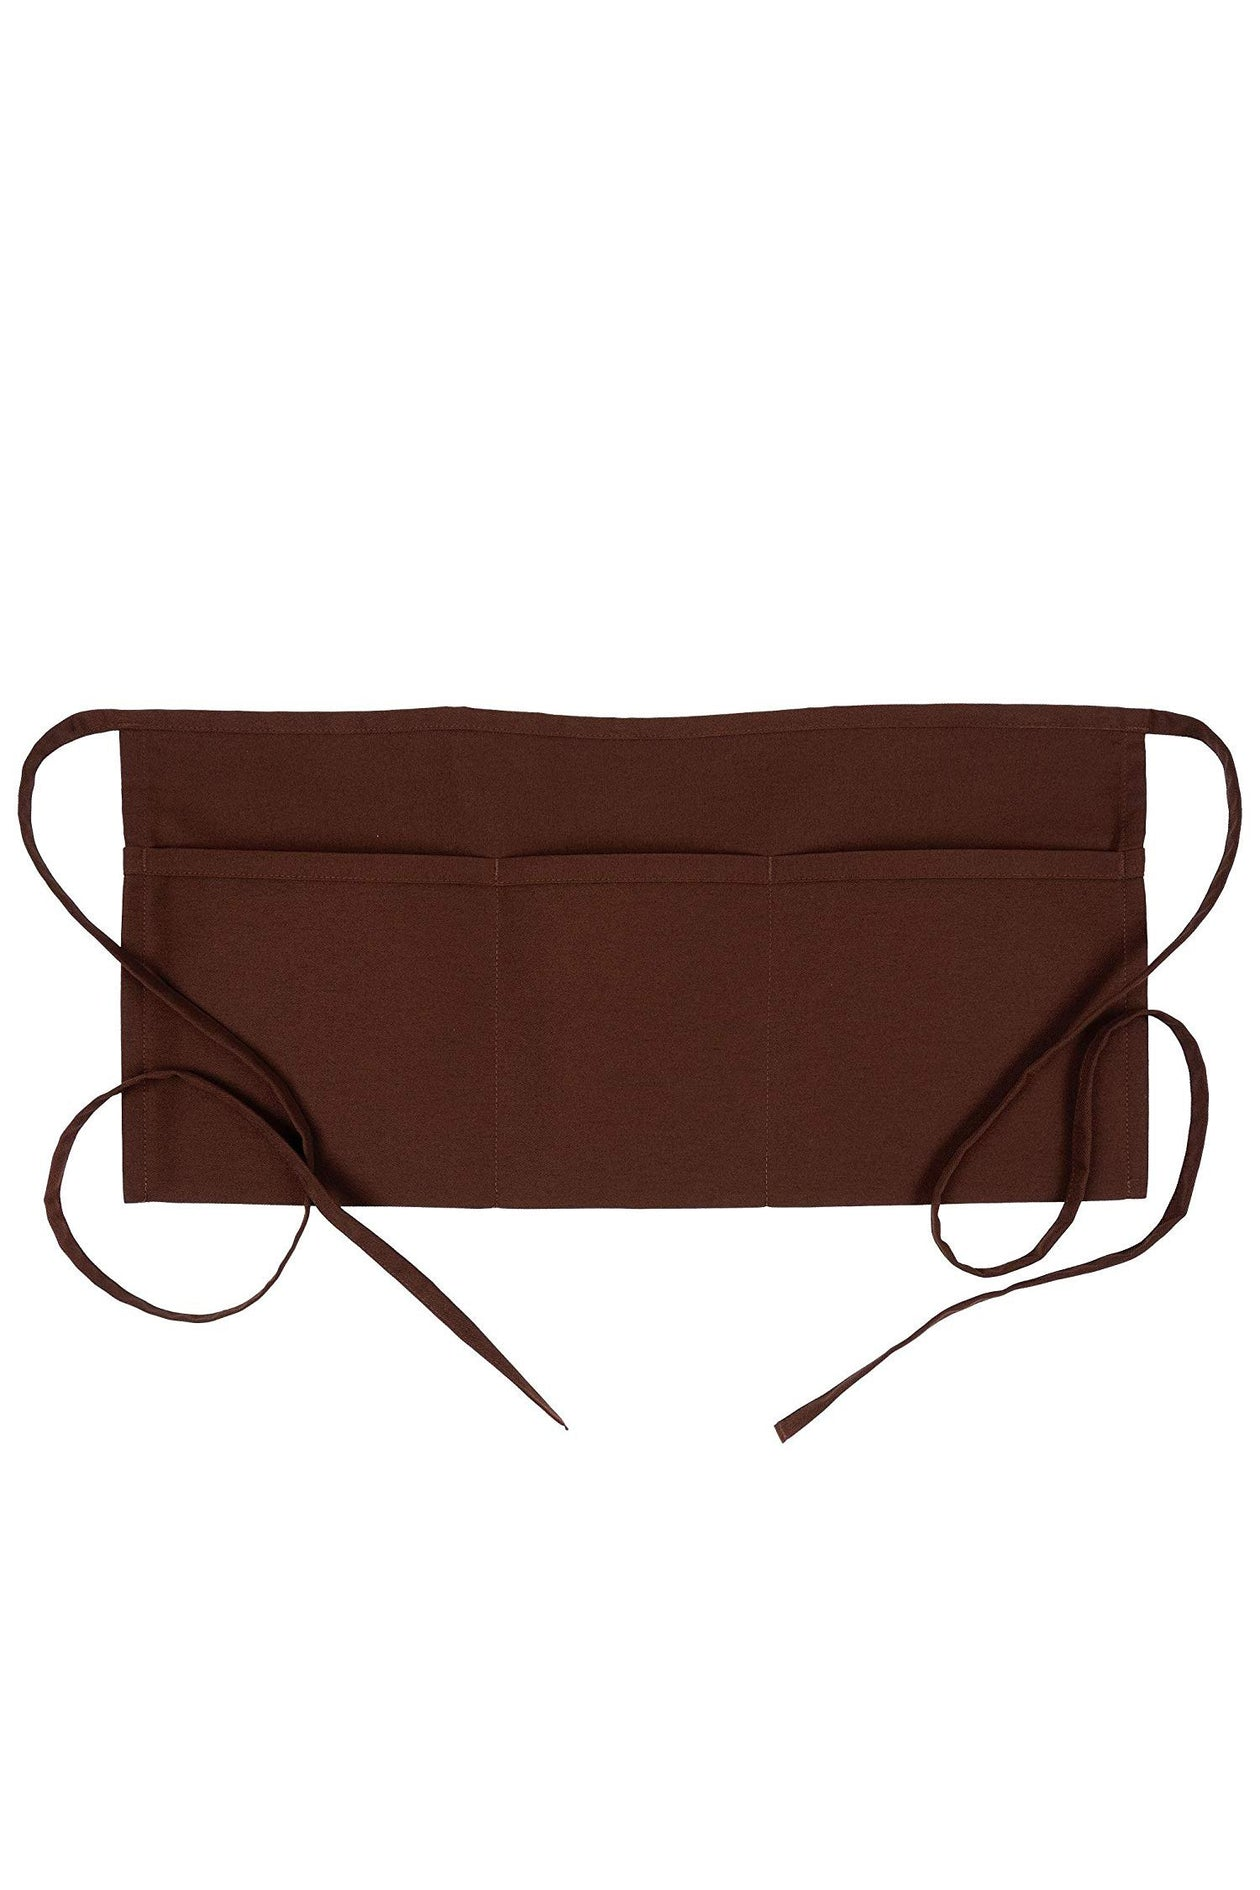 Brown Waist Apron (3 Pockets)